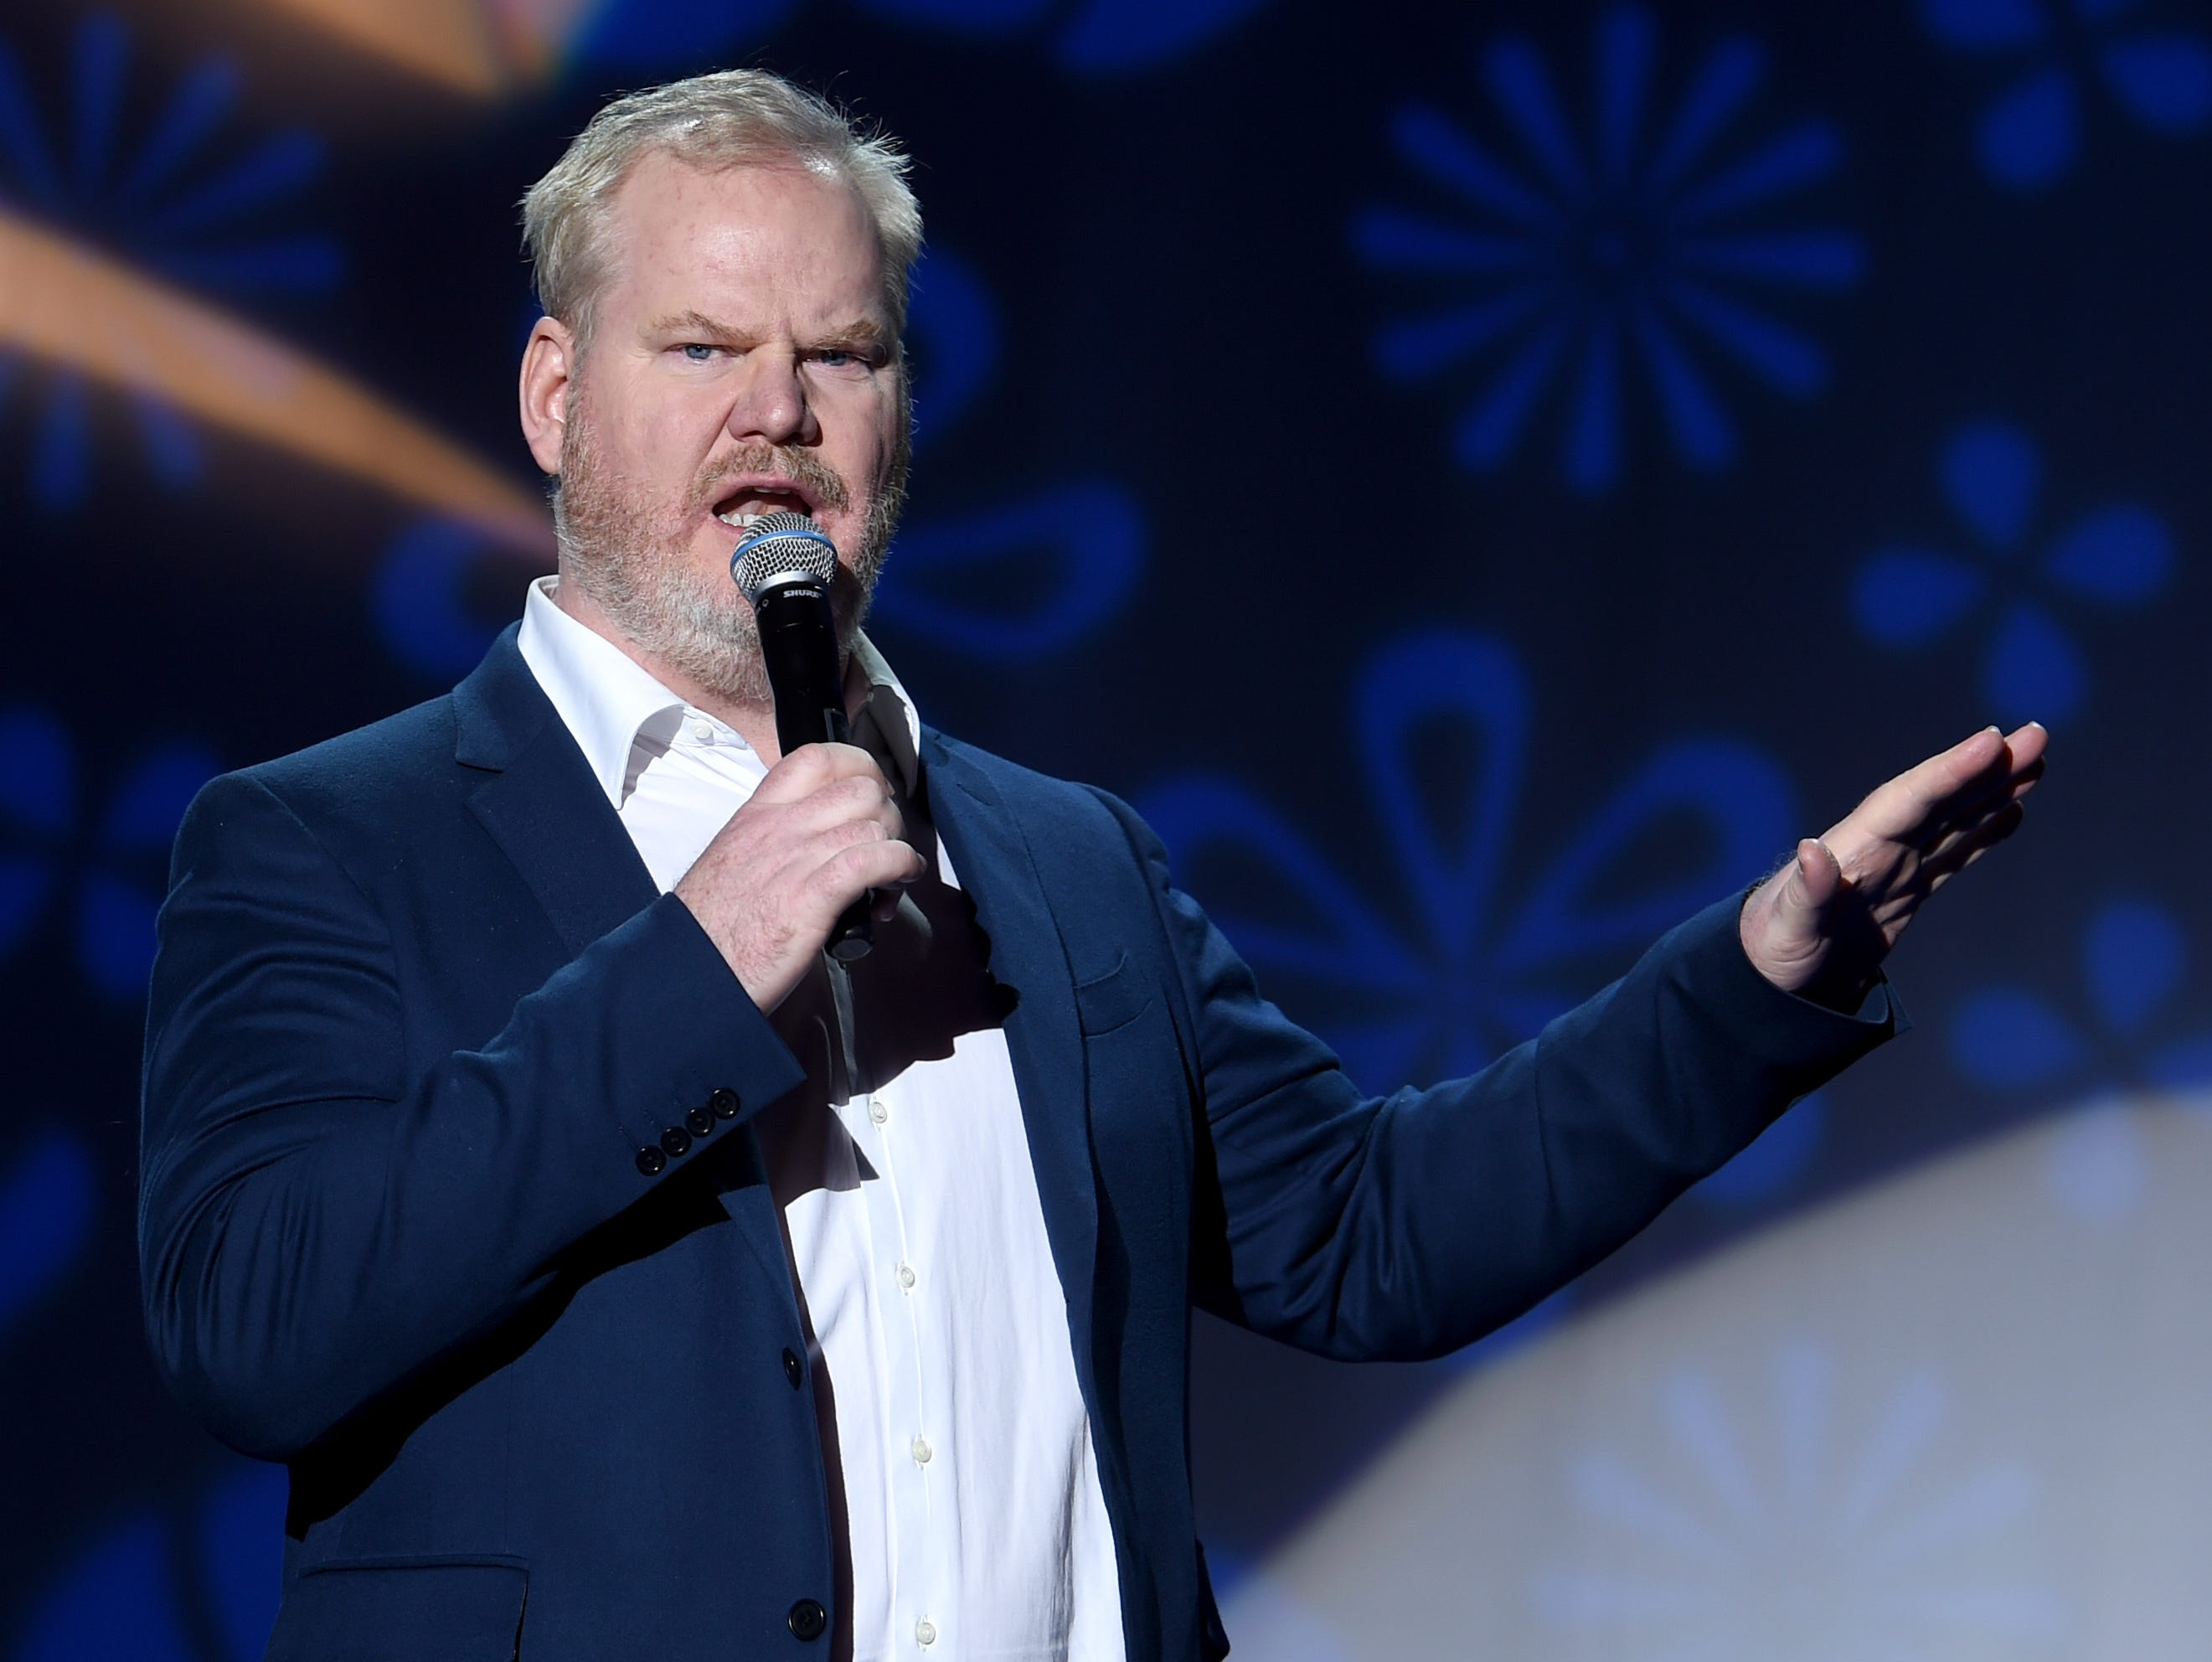 Knoxville-filmed 'Light From Light' starring Jim Gaffigan to premiere at Sundance